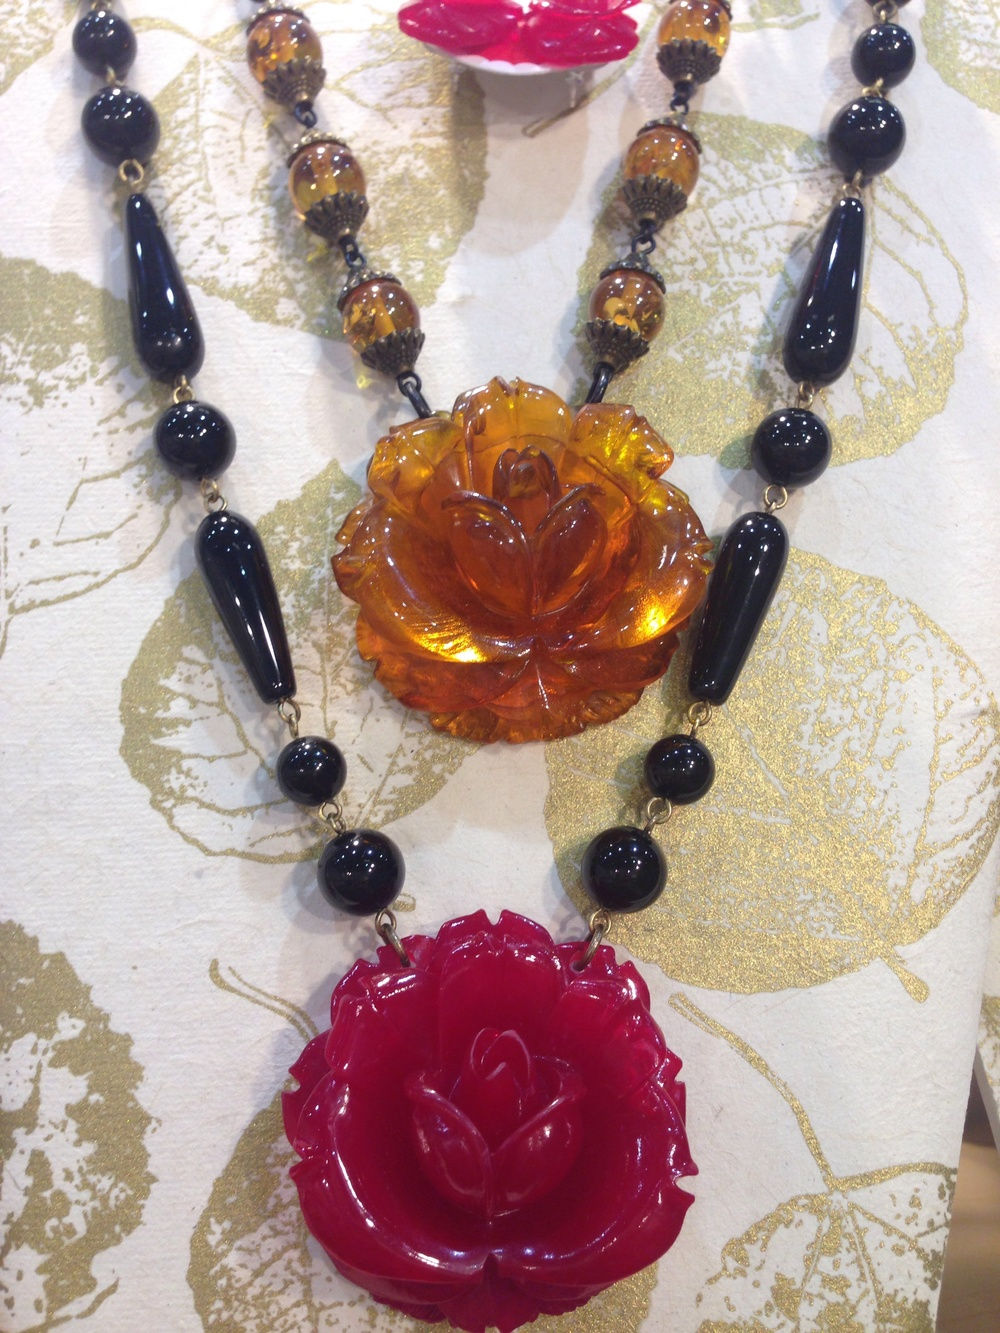 Roses! Big roses!  Paired with black onyx and amber.  Really nice!